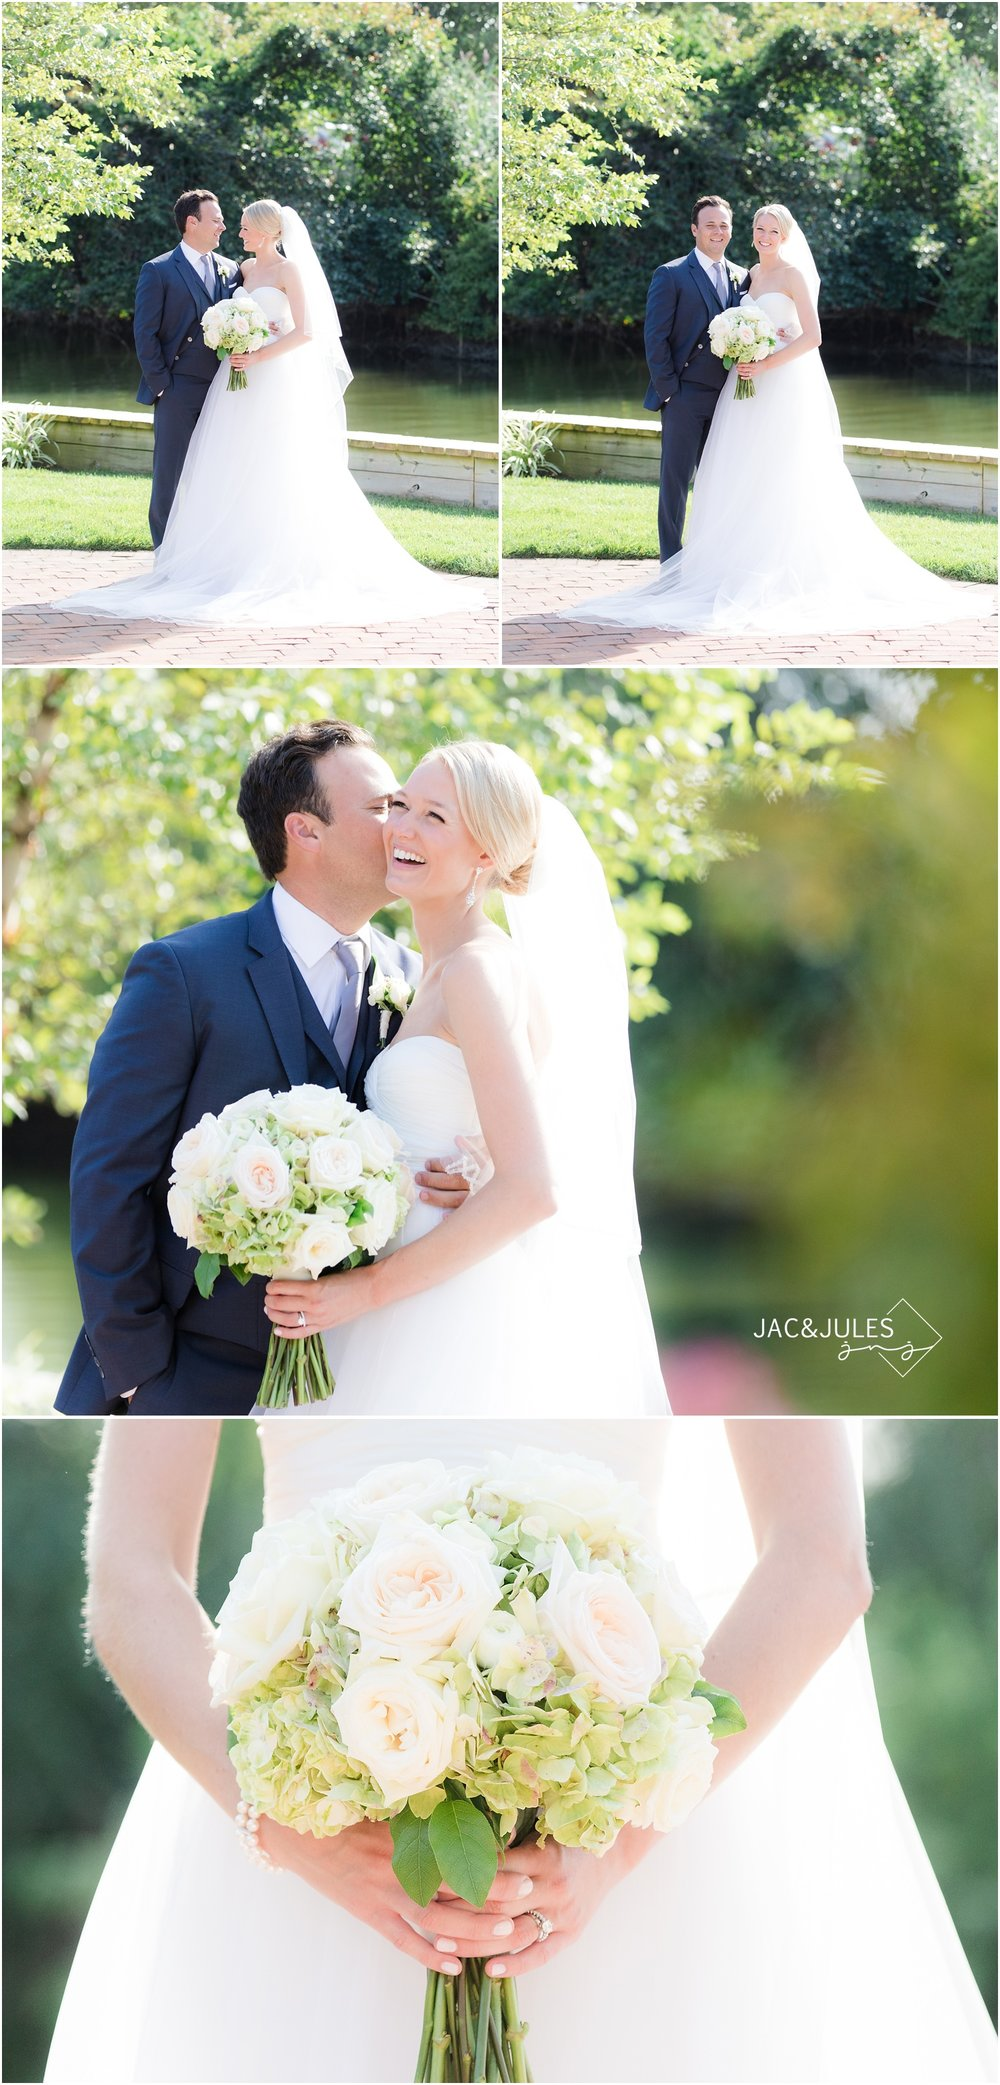 Romantic Bride and groom photos at All Saints Church in Bay Head, NJ.